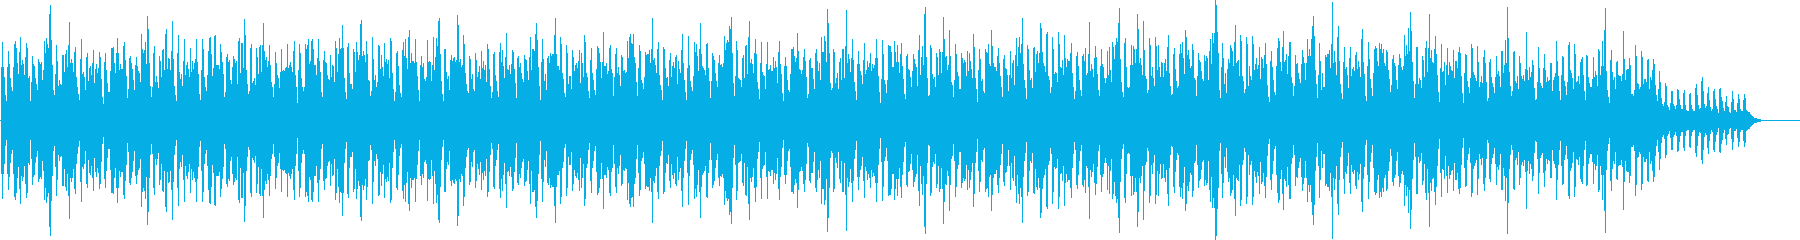 A calming song with a nice violin tone's reproduced waveform